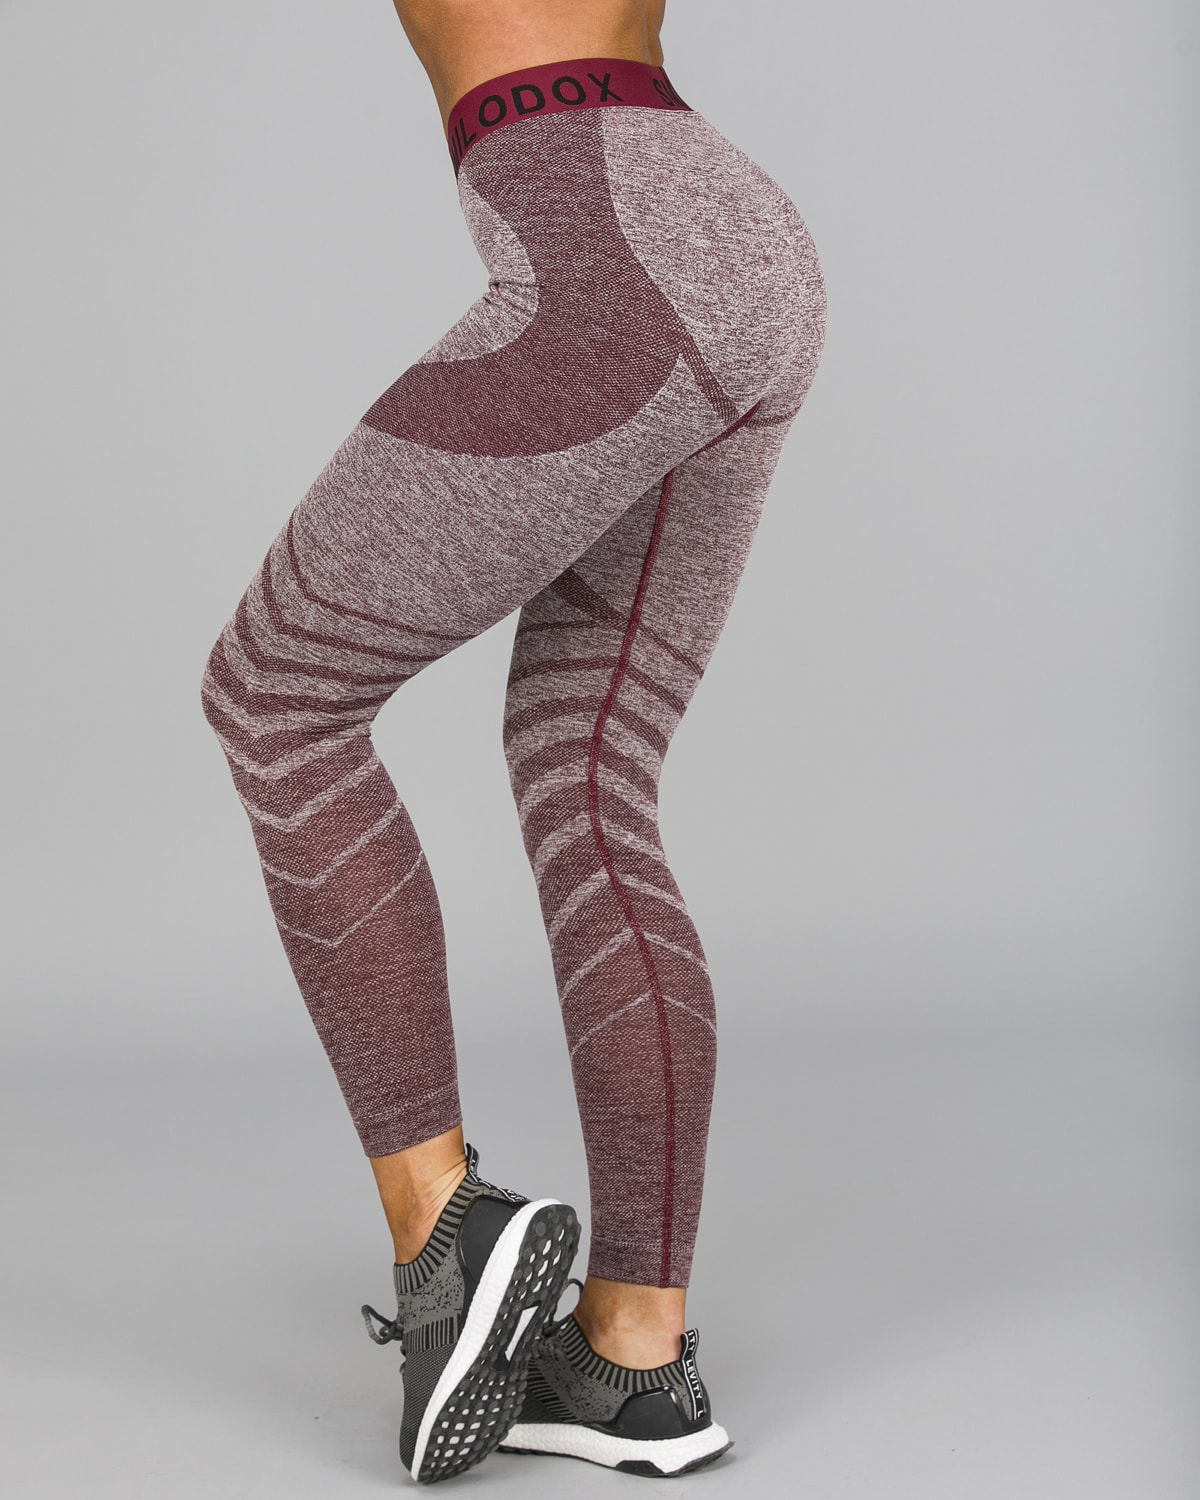 Smilodox – Vira Leggings – Bordeaux7